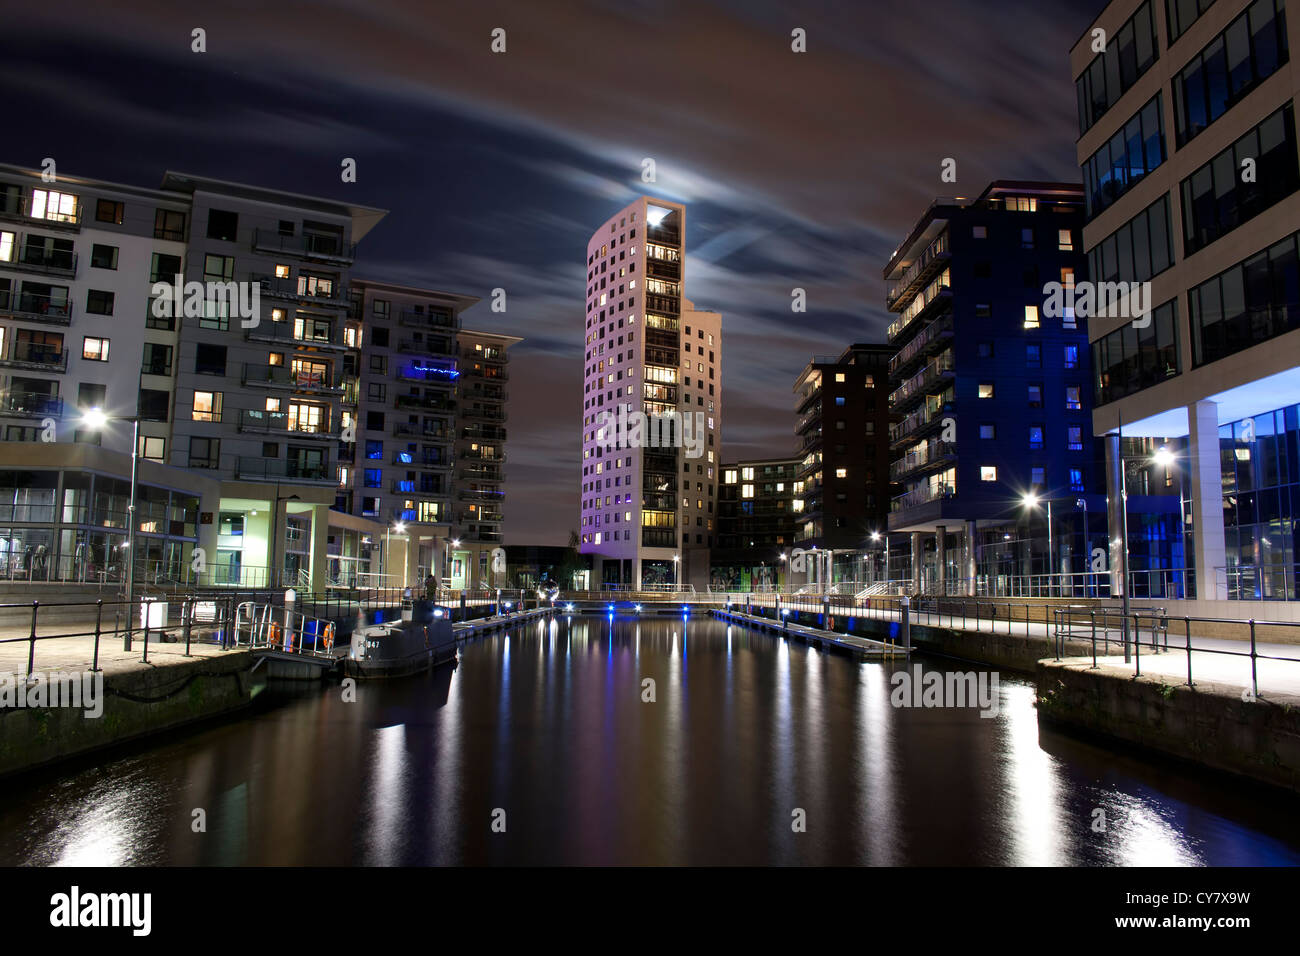 Clarence Dock in Leeds,West Yorkshire at night time.With the moon shining through a tower. - Stock Image